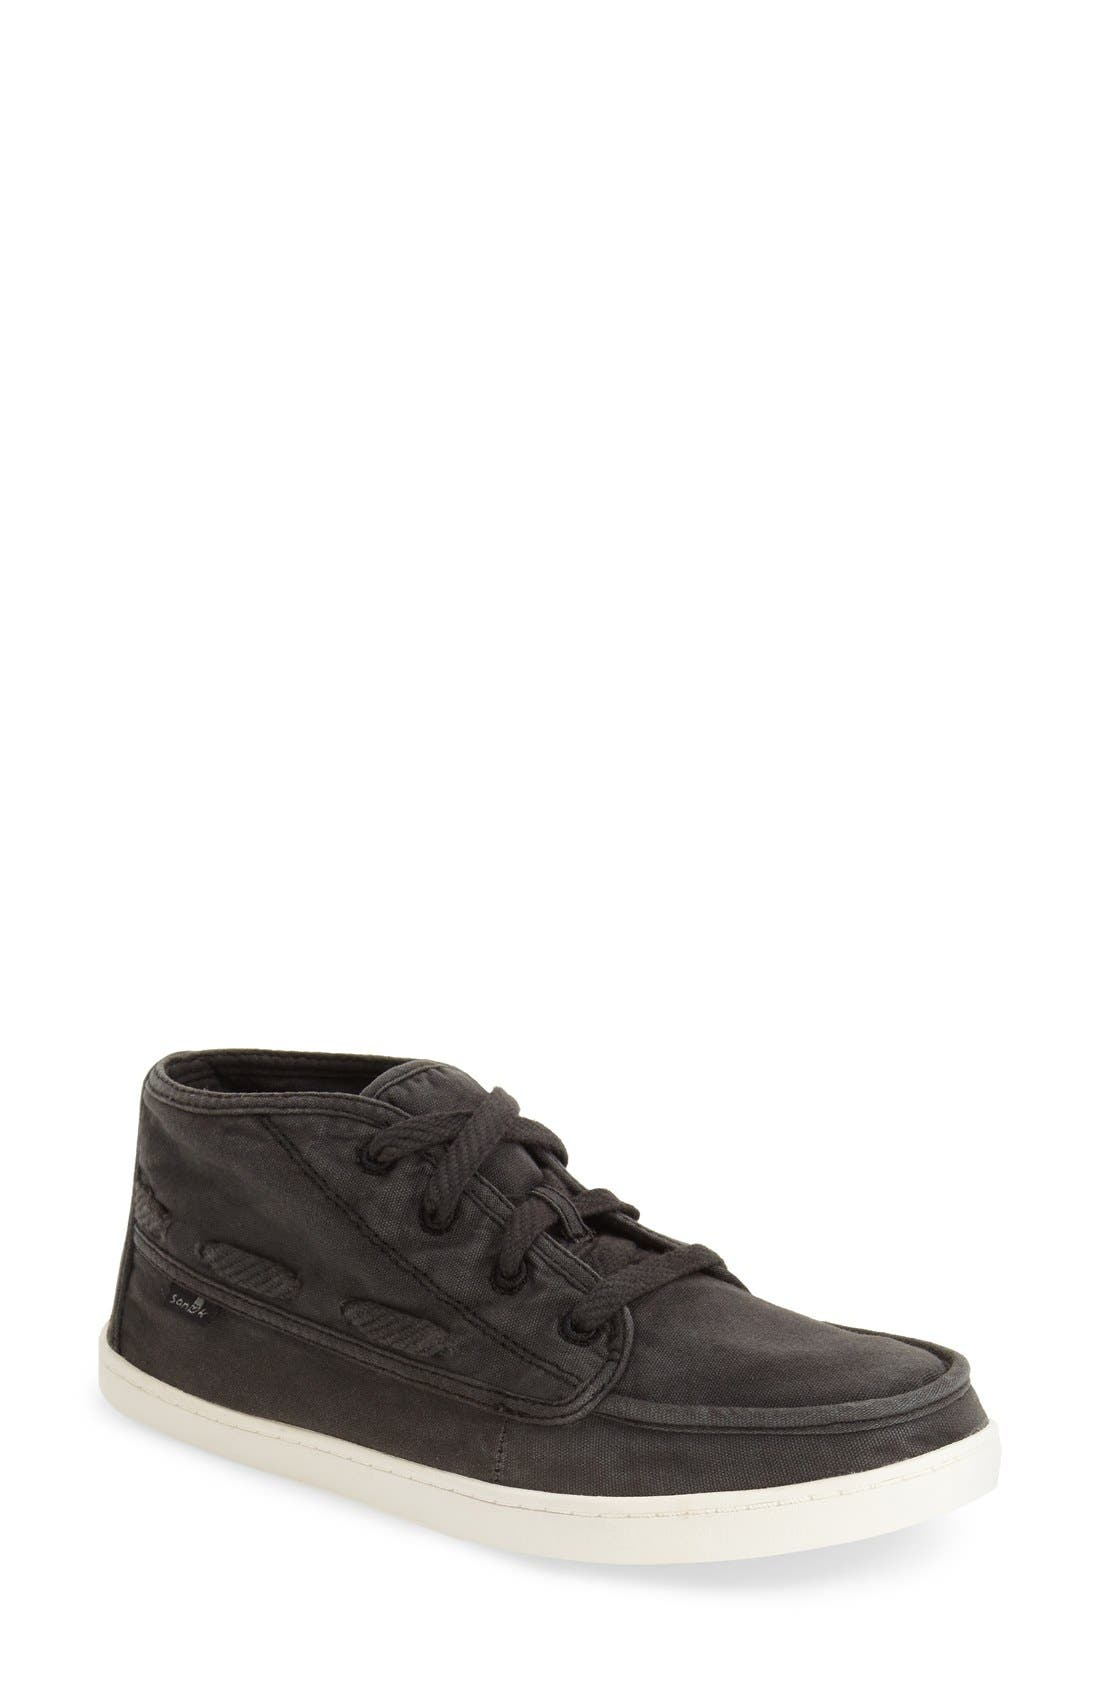 'Vee K Shawn' High Top Sneaker,                         Main,                         color, Washed Black